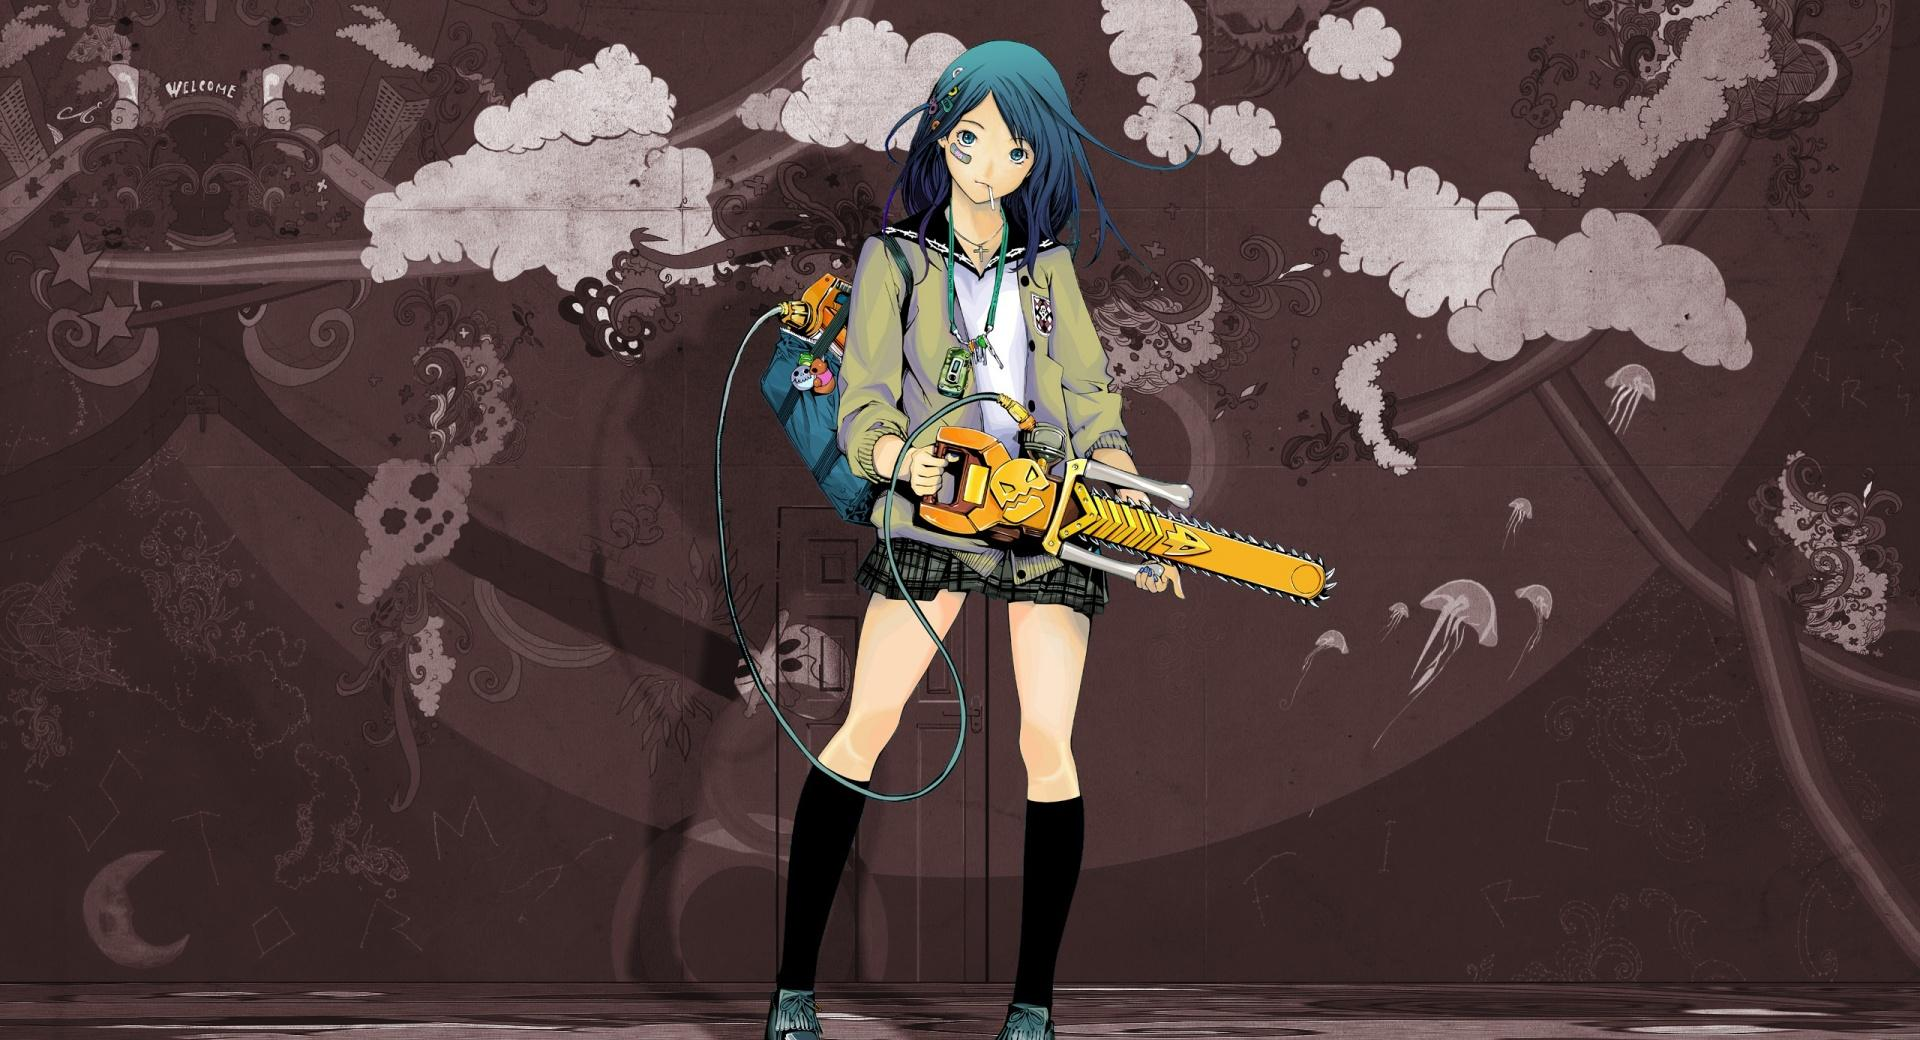 Anime Girl With Chainsaw wallpapers HD quality